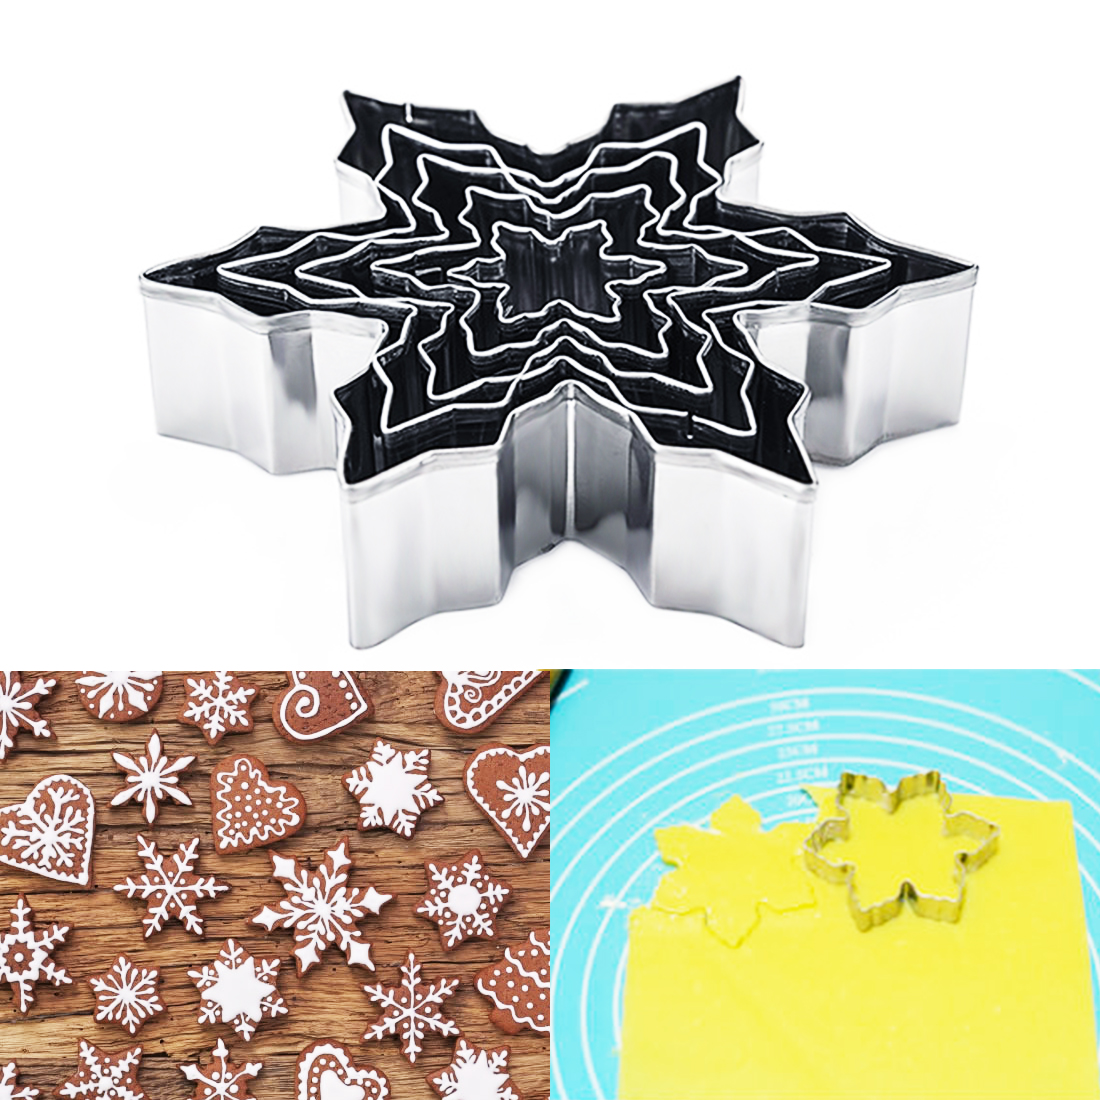 5pcs/set Metal Snowflake Shape Christmas Cookie Cutter Kitchen Fondant Cake Decorating Tools Chocolate Soap Mold Cake Stencils